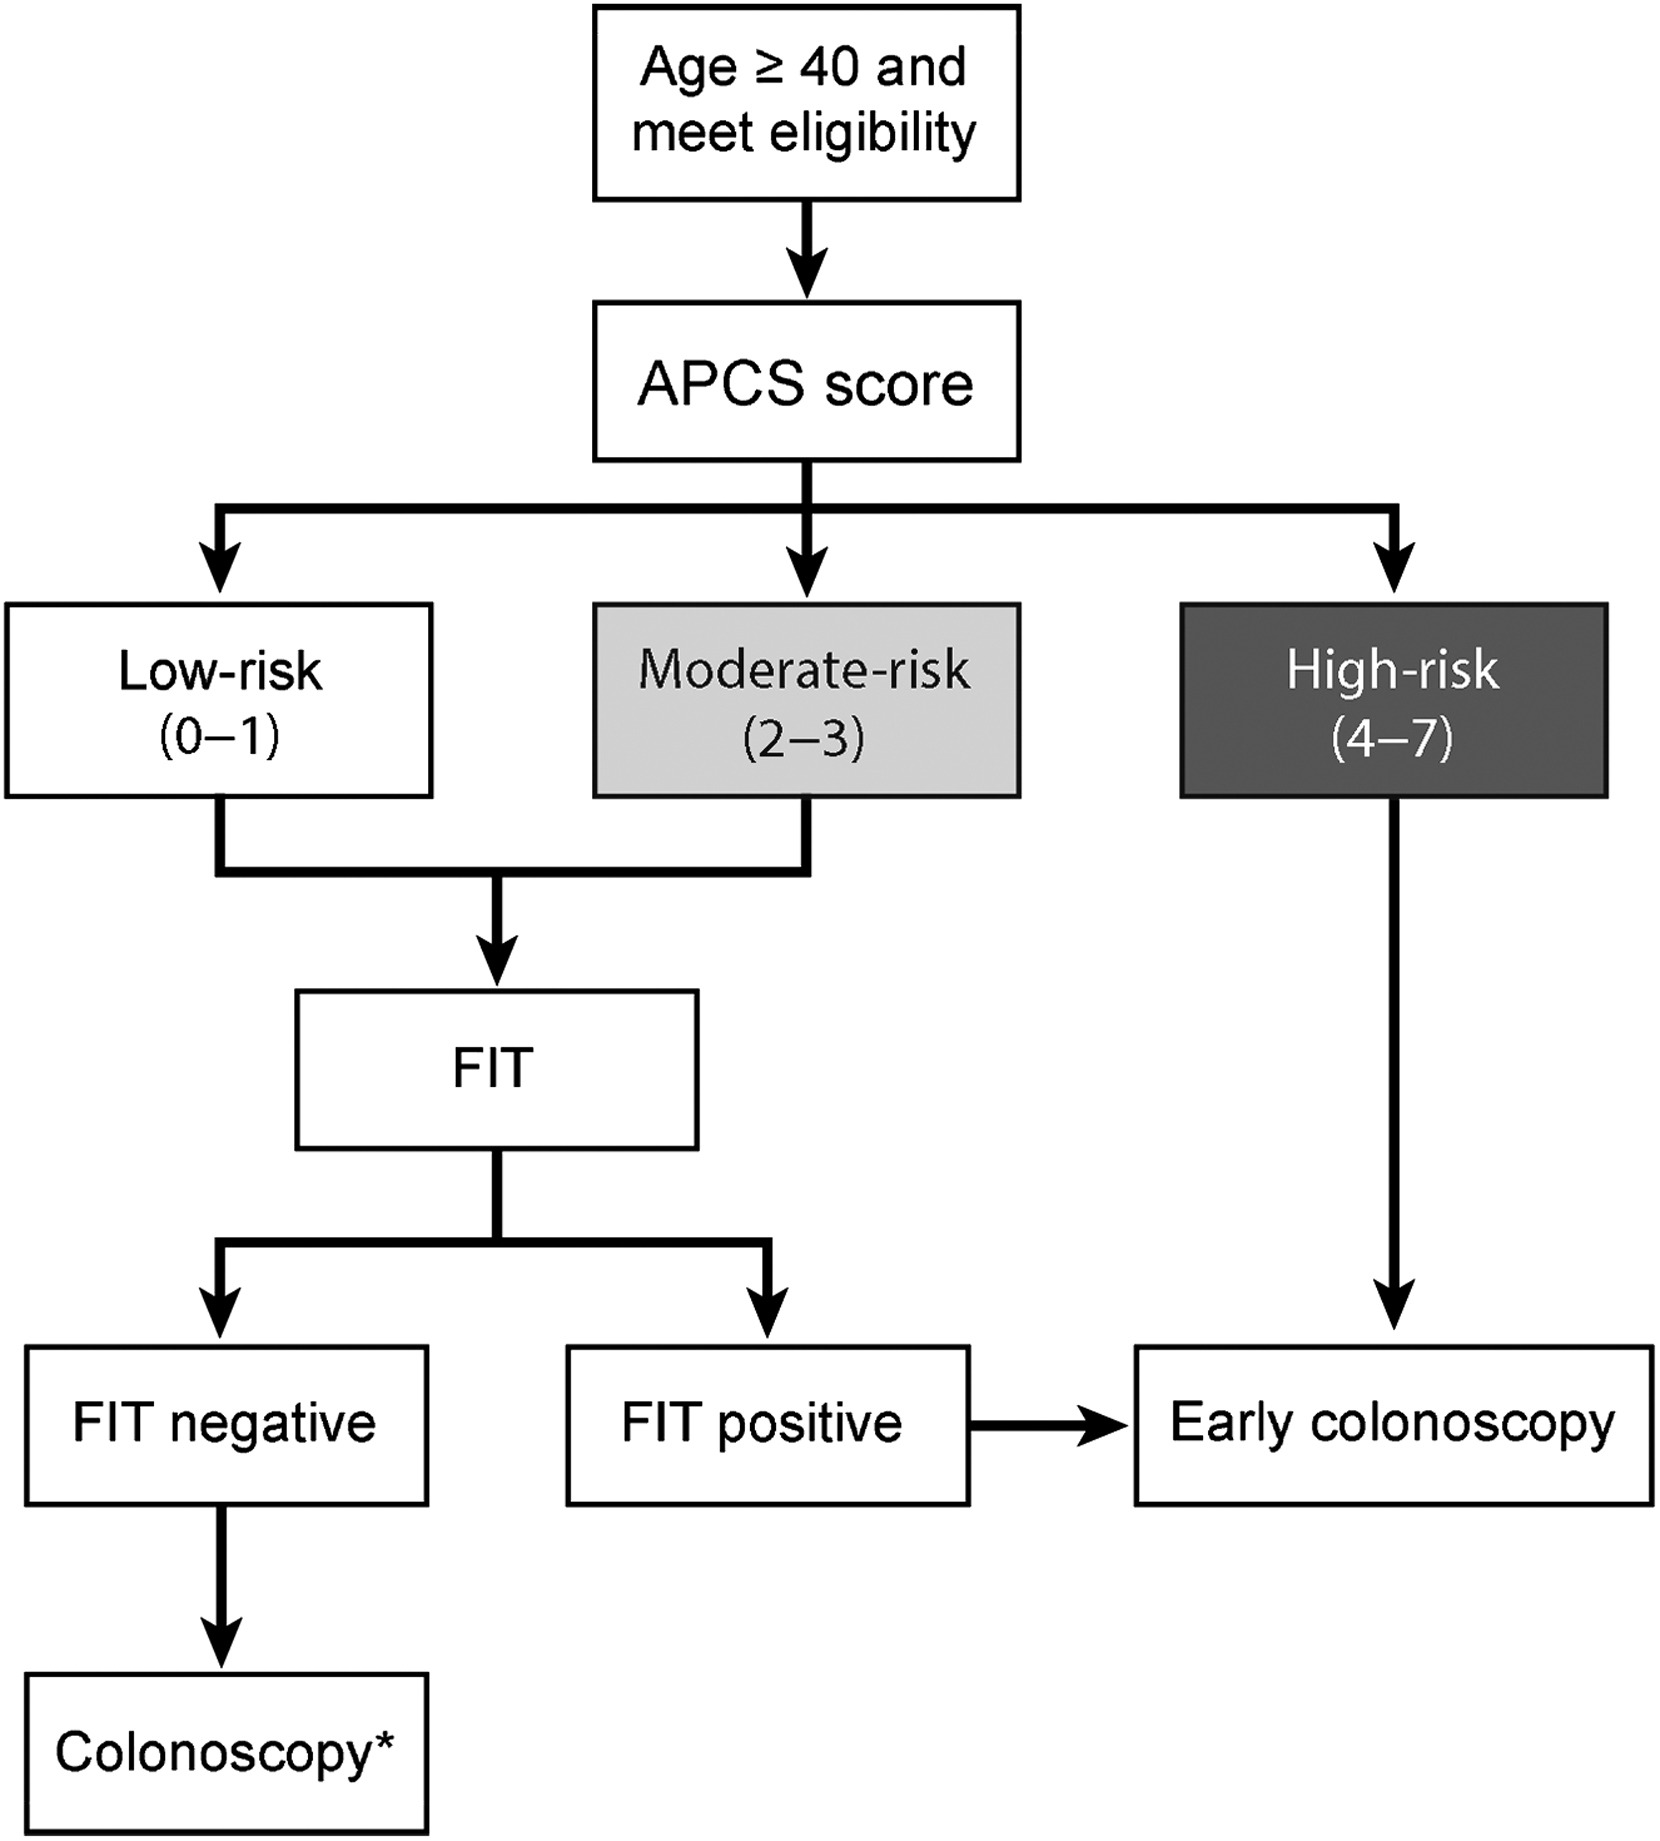 A Risk Scoring System Combined With A Fecal Immunochemical Test Is Effective In Screening High